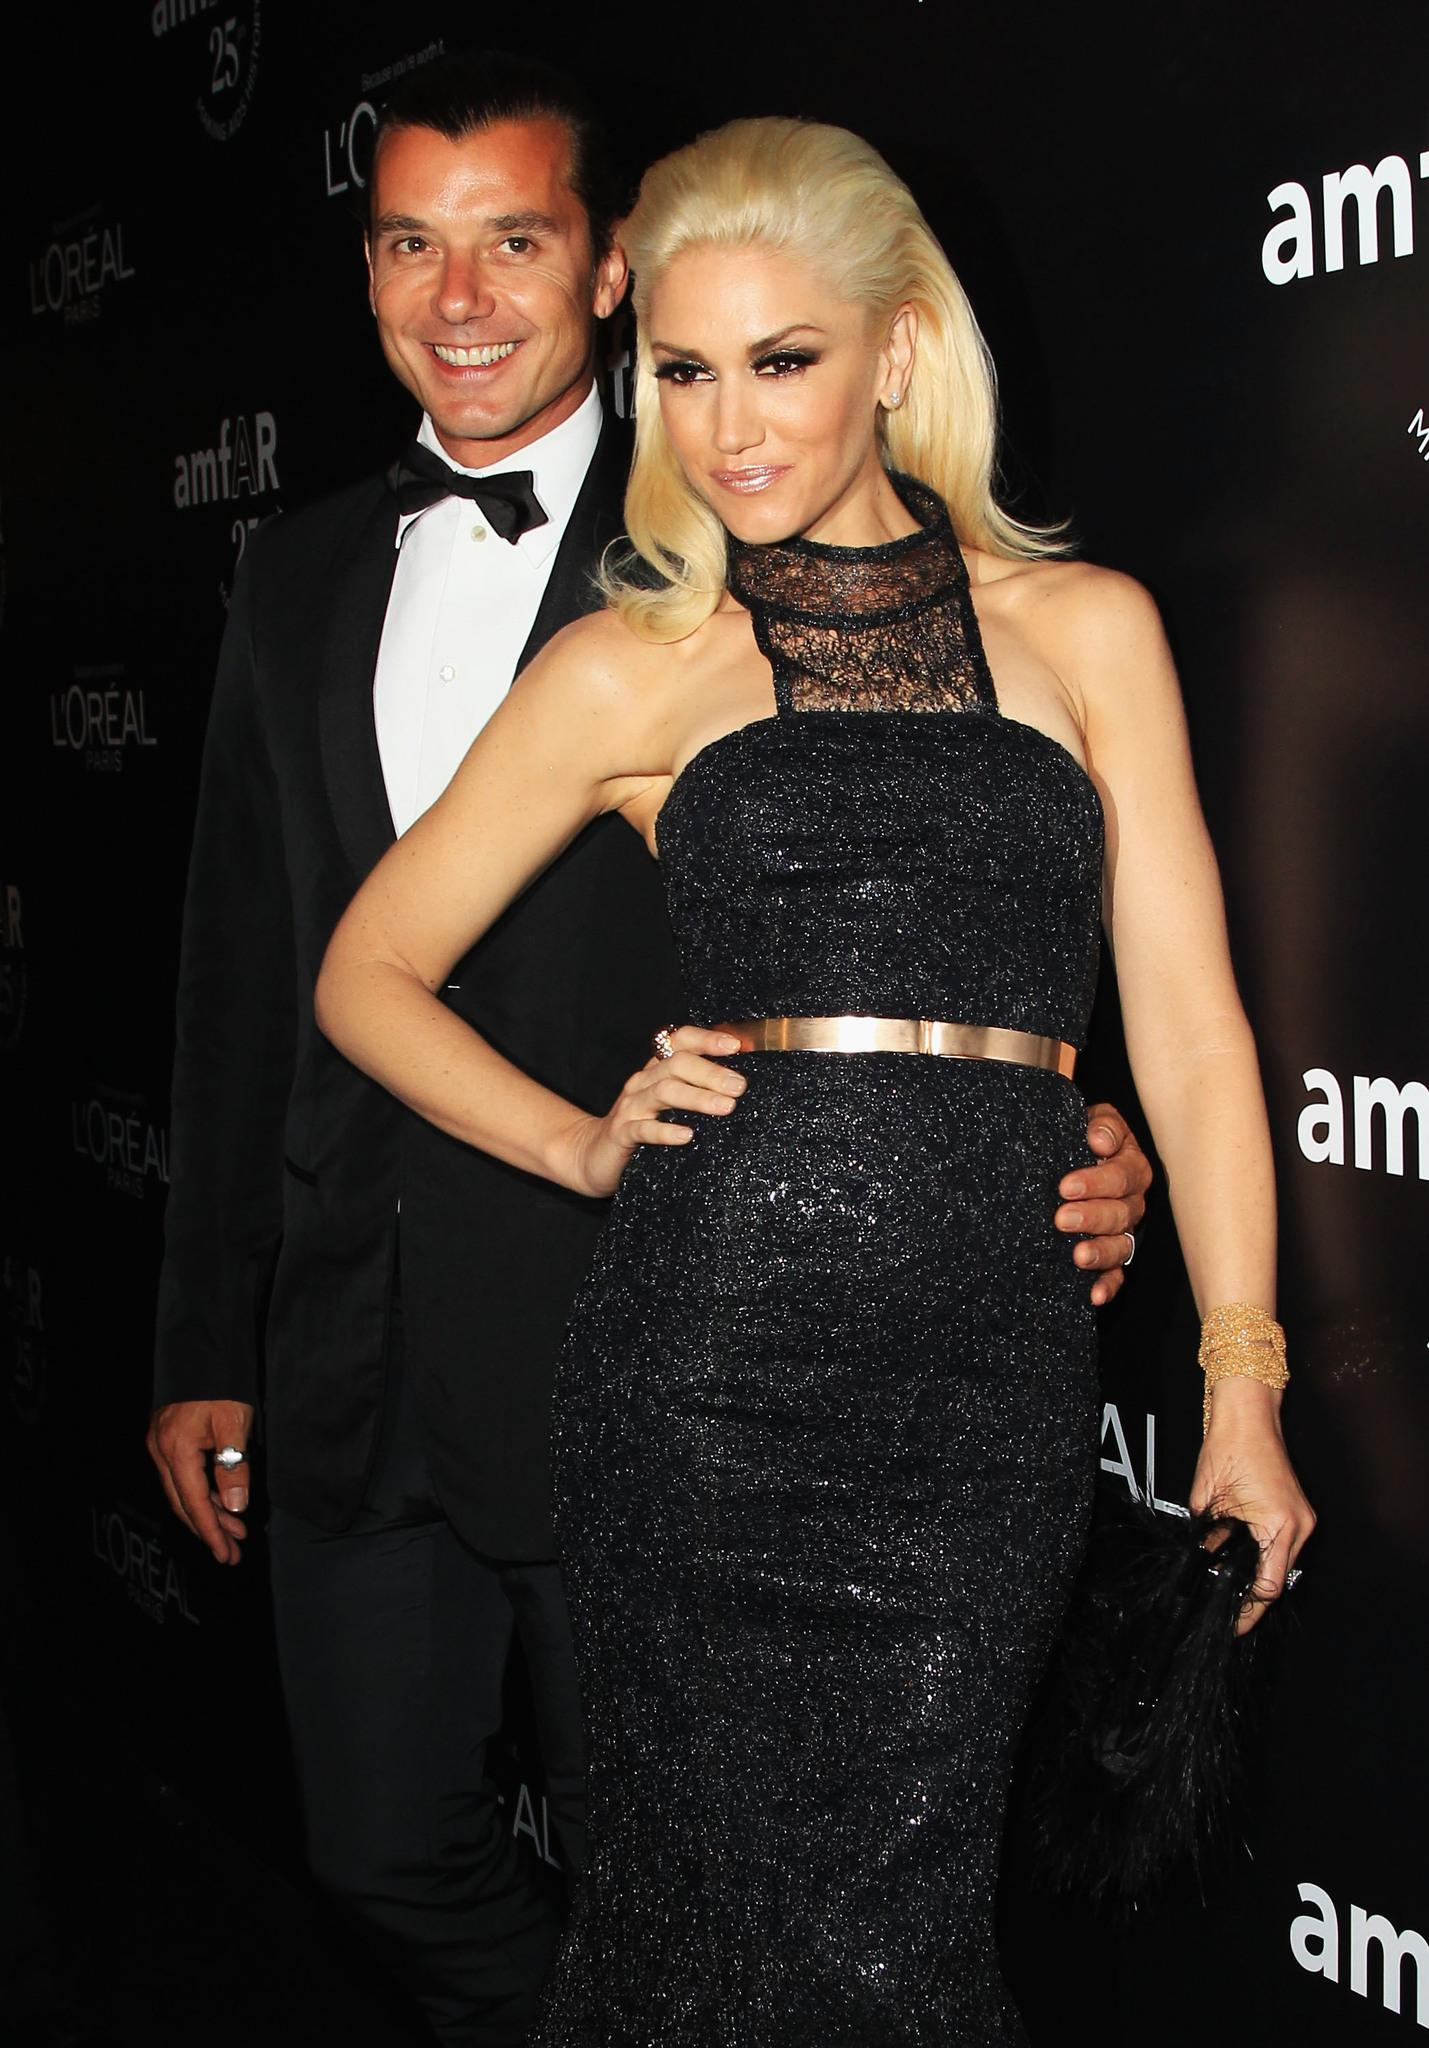 gwen-stefani-and-gavin-rossdale-large-picture